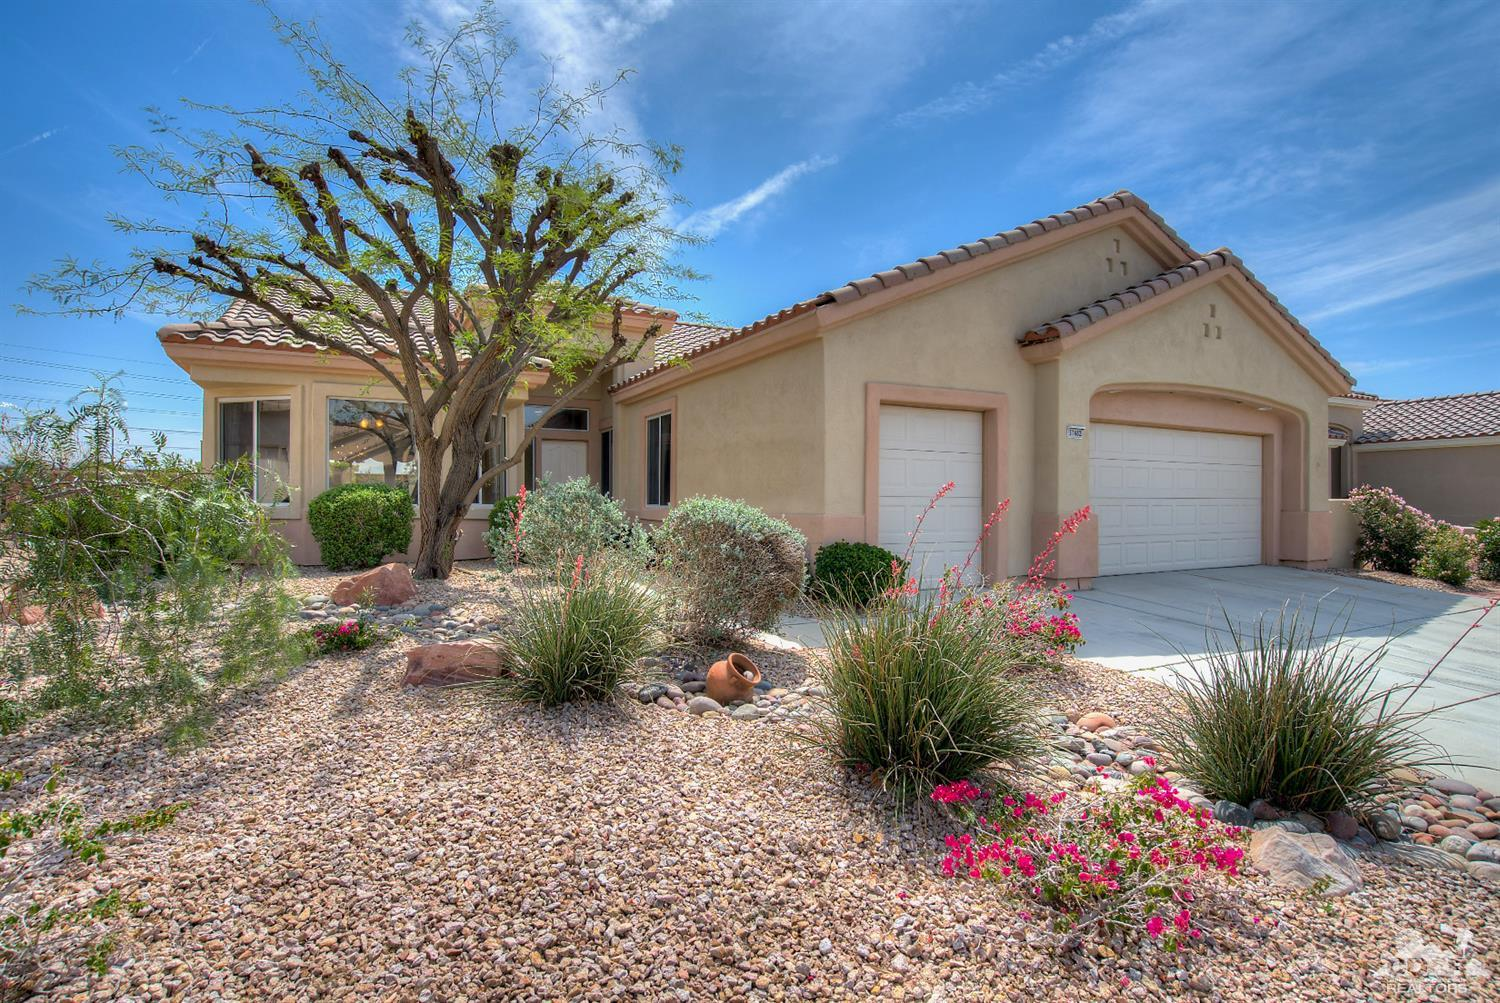 sun city palm desert homes for sale 300 001 to 350 000